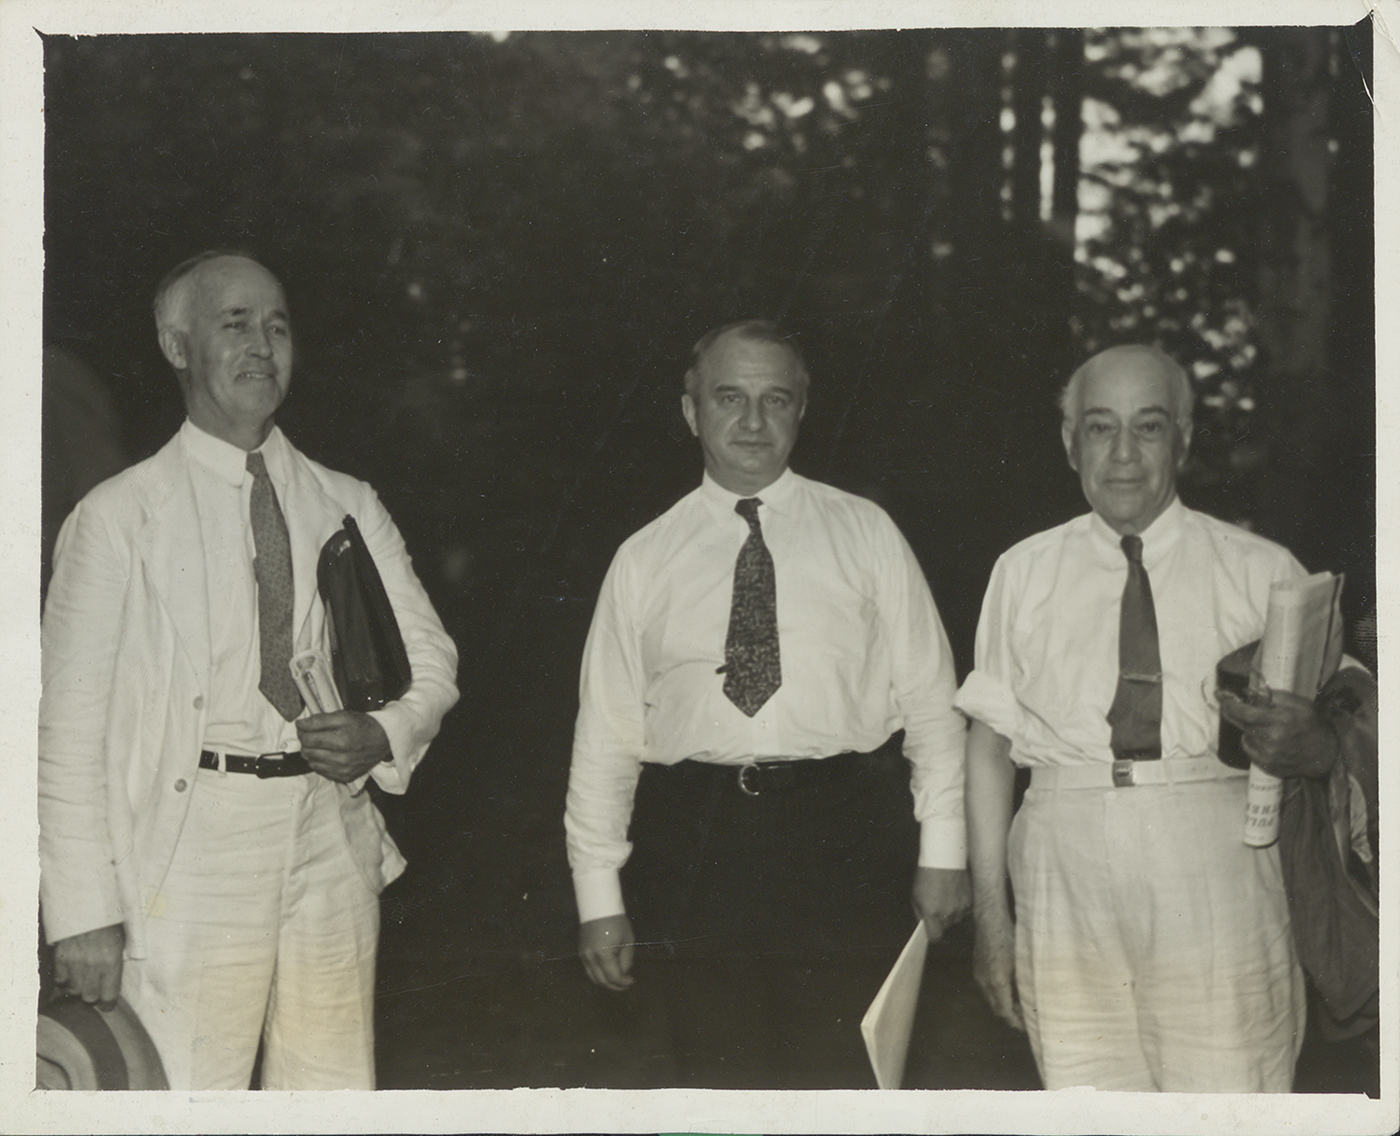 John S. Apperson Jr., Senator Ellwood M. Rabenold, and Colonel C. Seymour Bullock (left to right) at an annual meeting of the Forest Preserve Association of New York State during the 1930s. Photograph by J. S. Cawley.